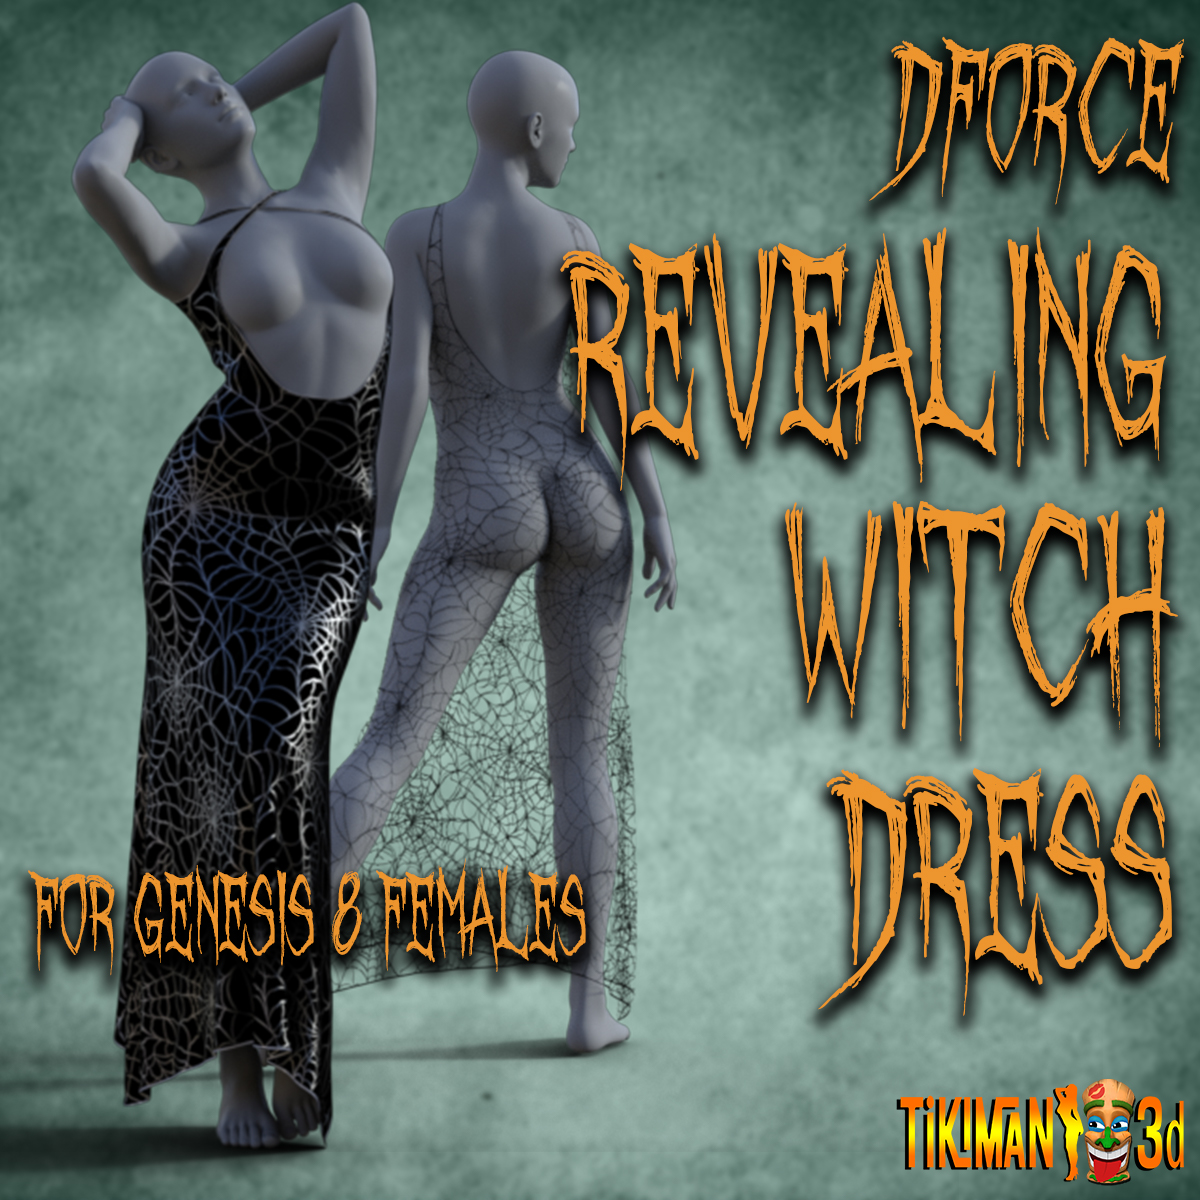 dforce - Revealing Witch Dress